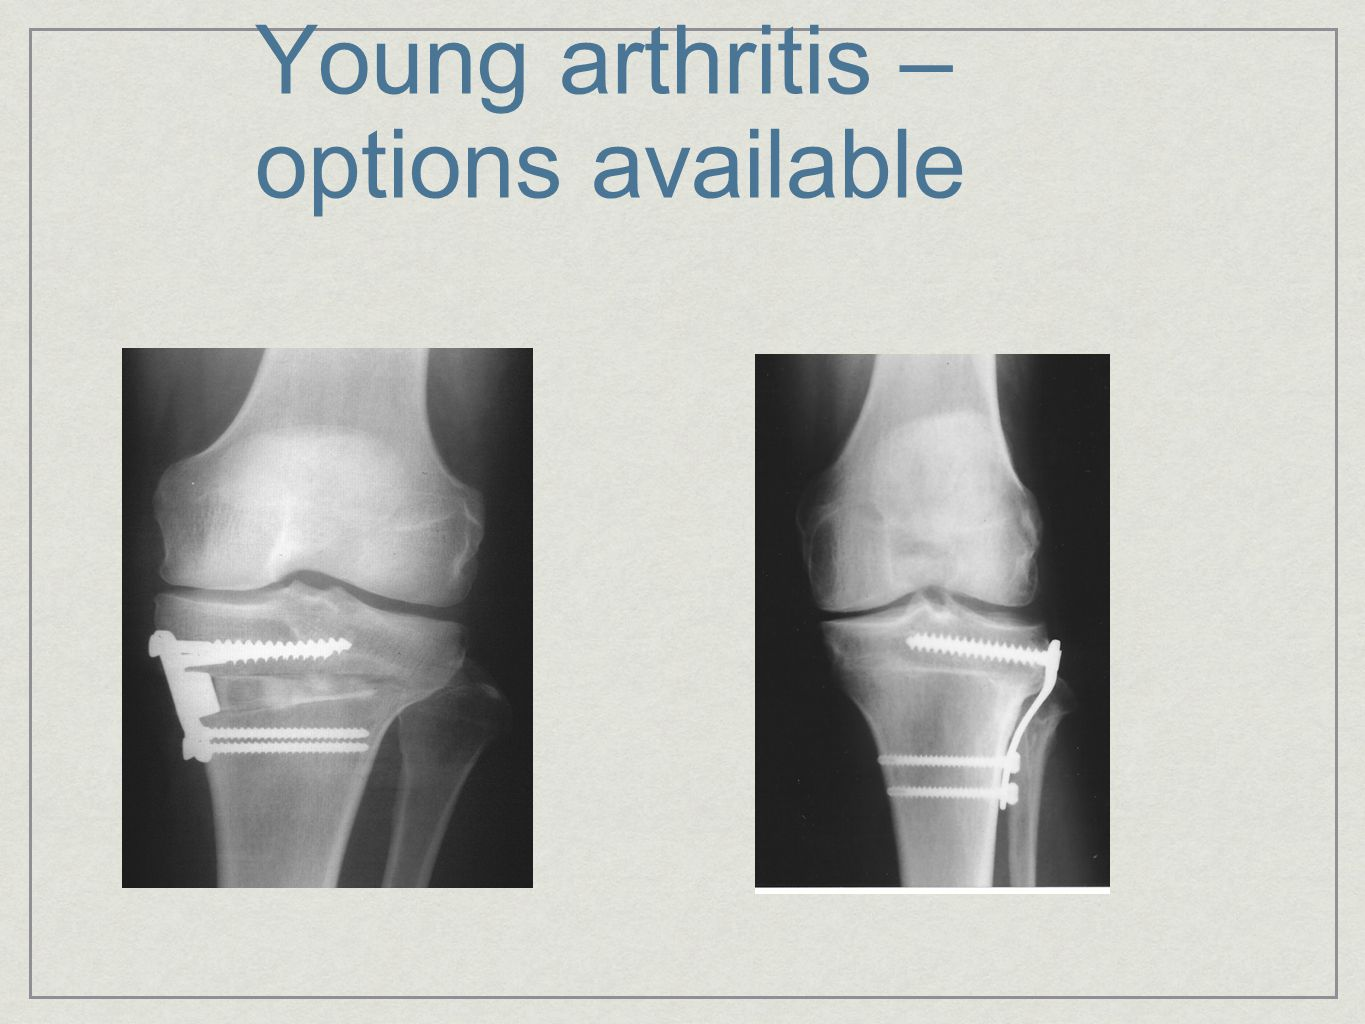 Young arthritis – options available